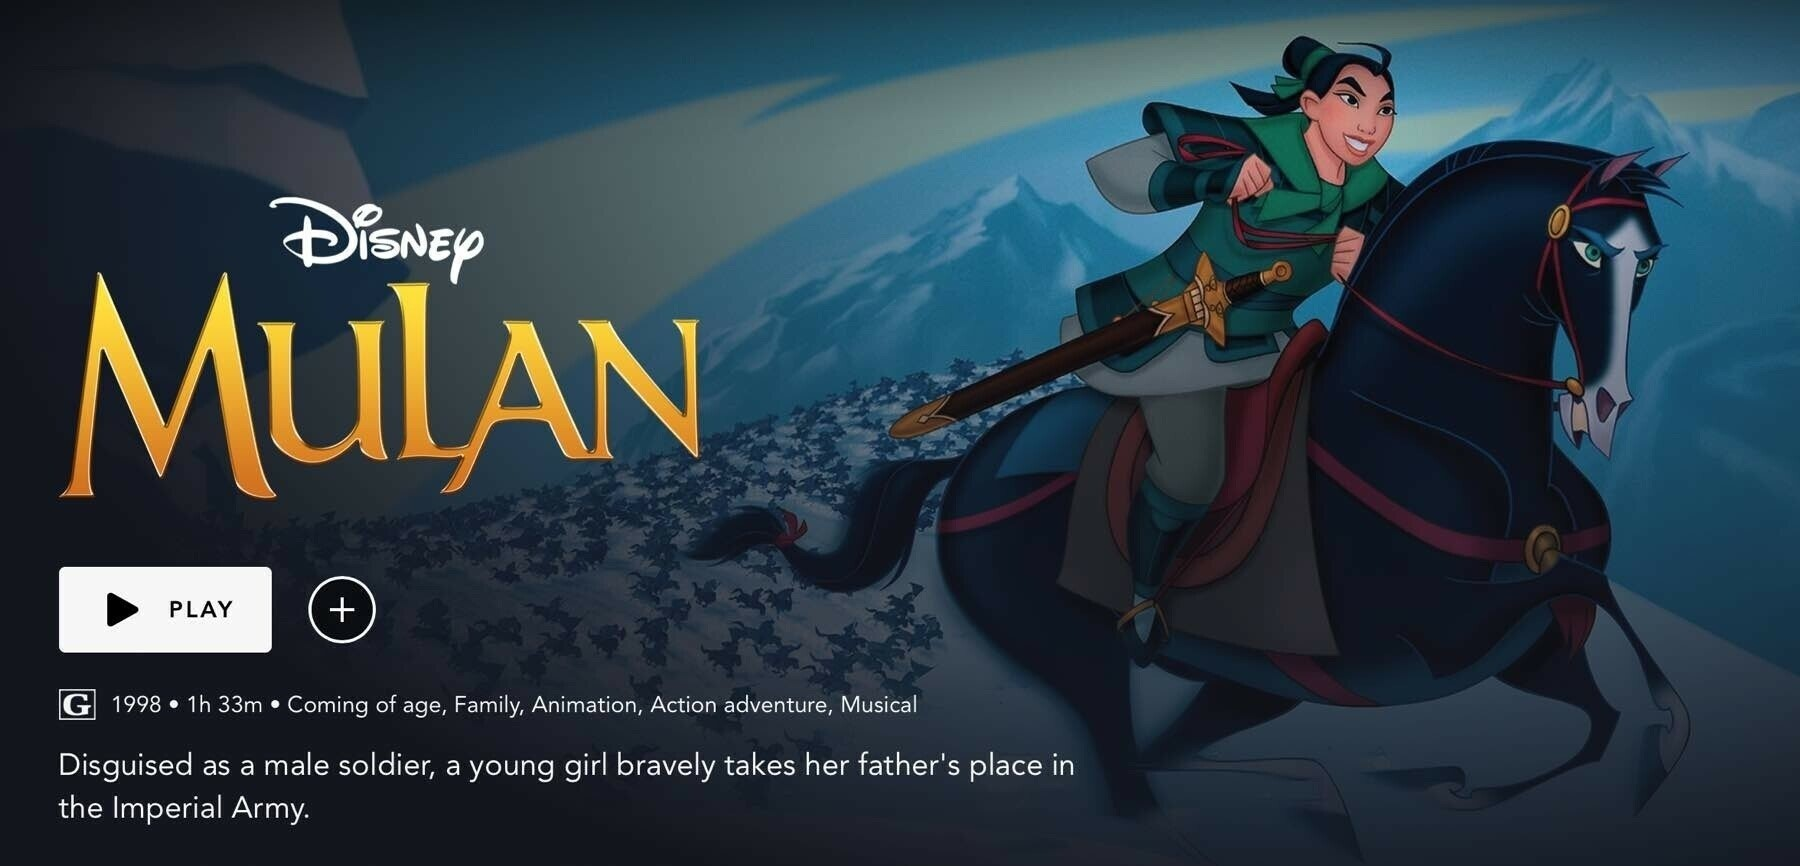 Mulan title screenshot.